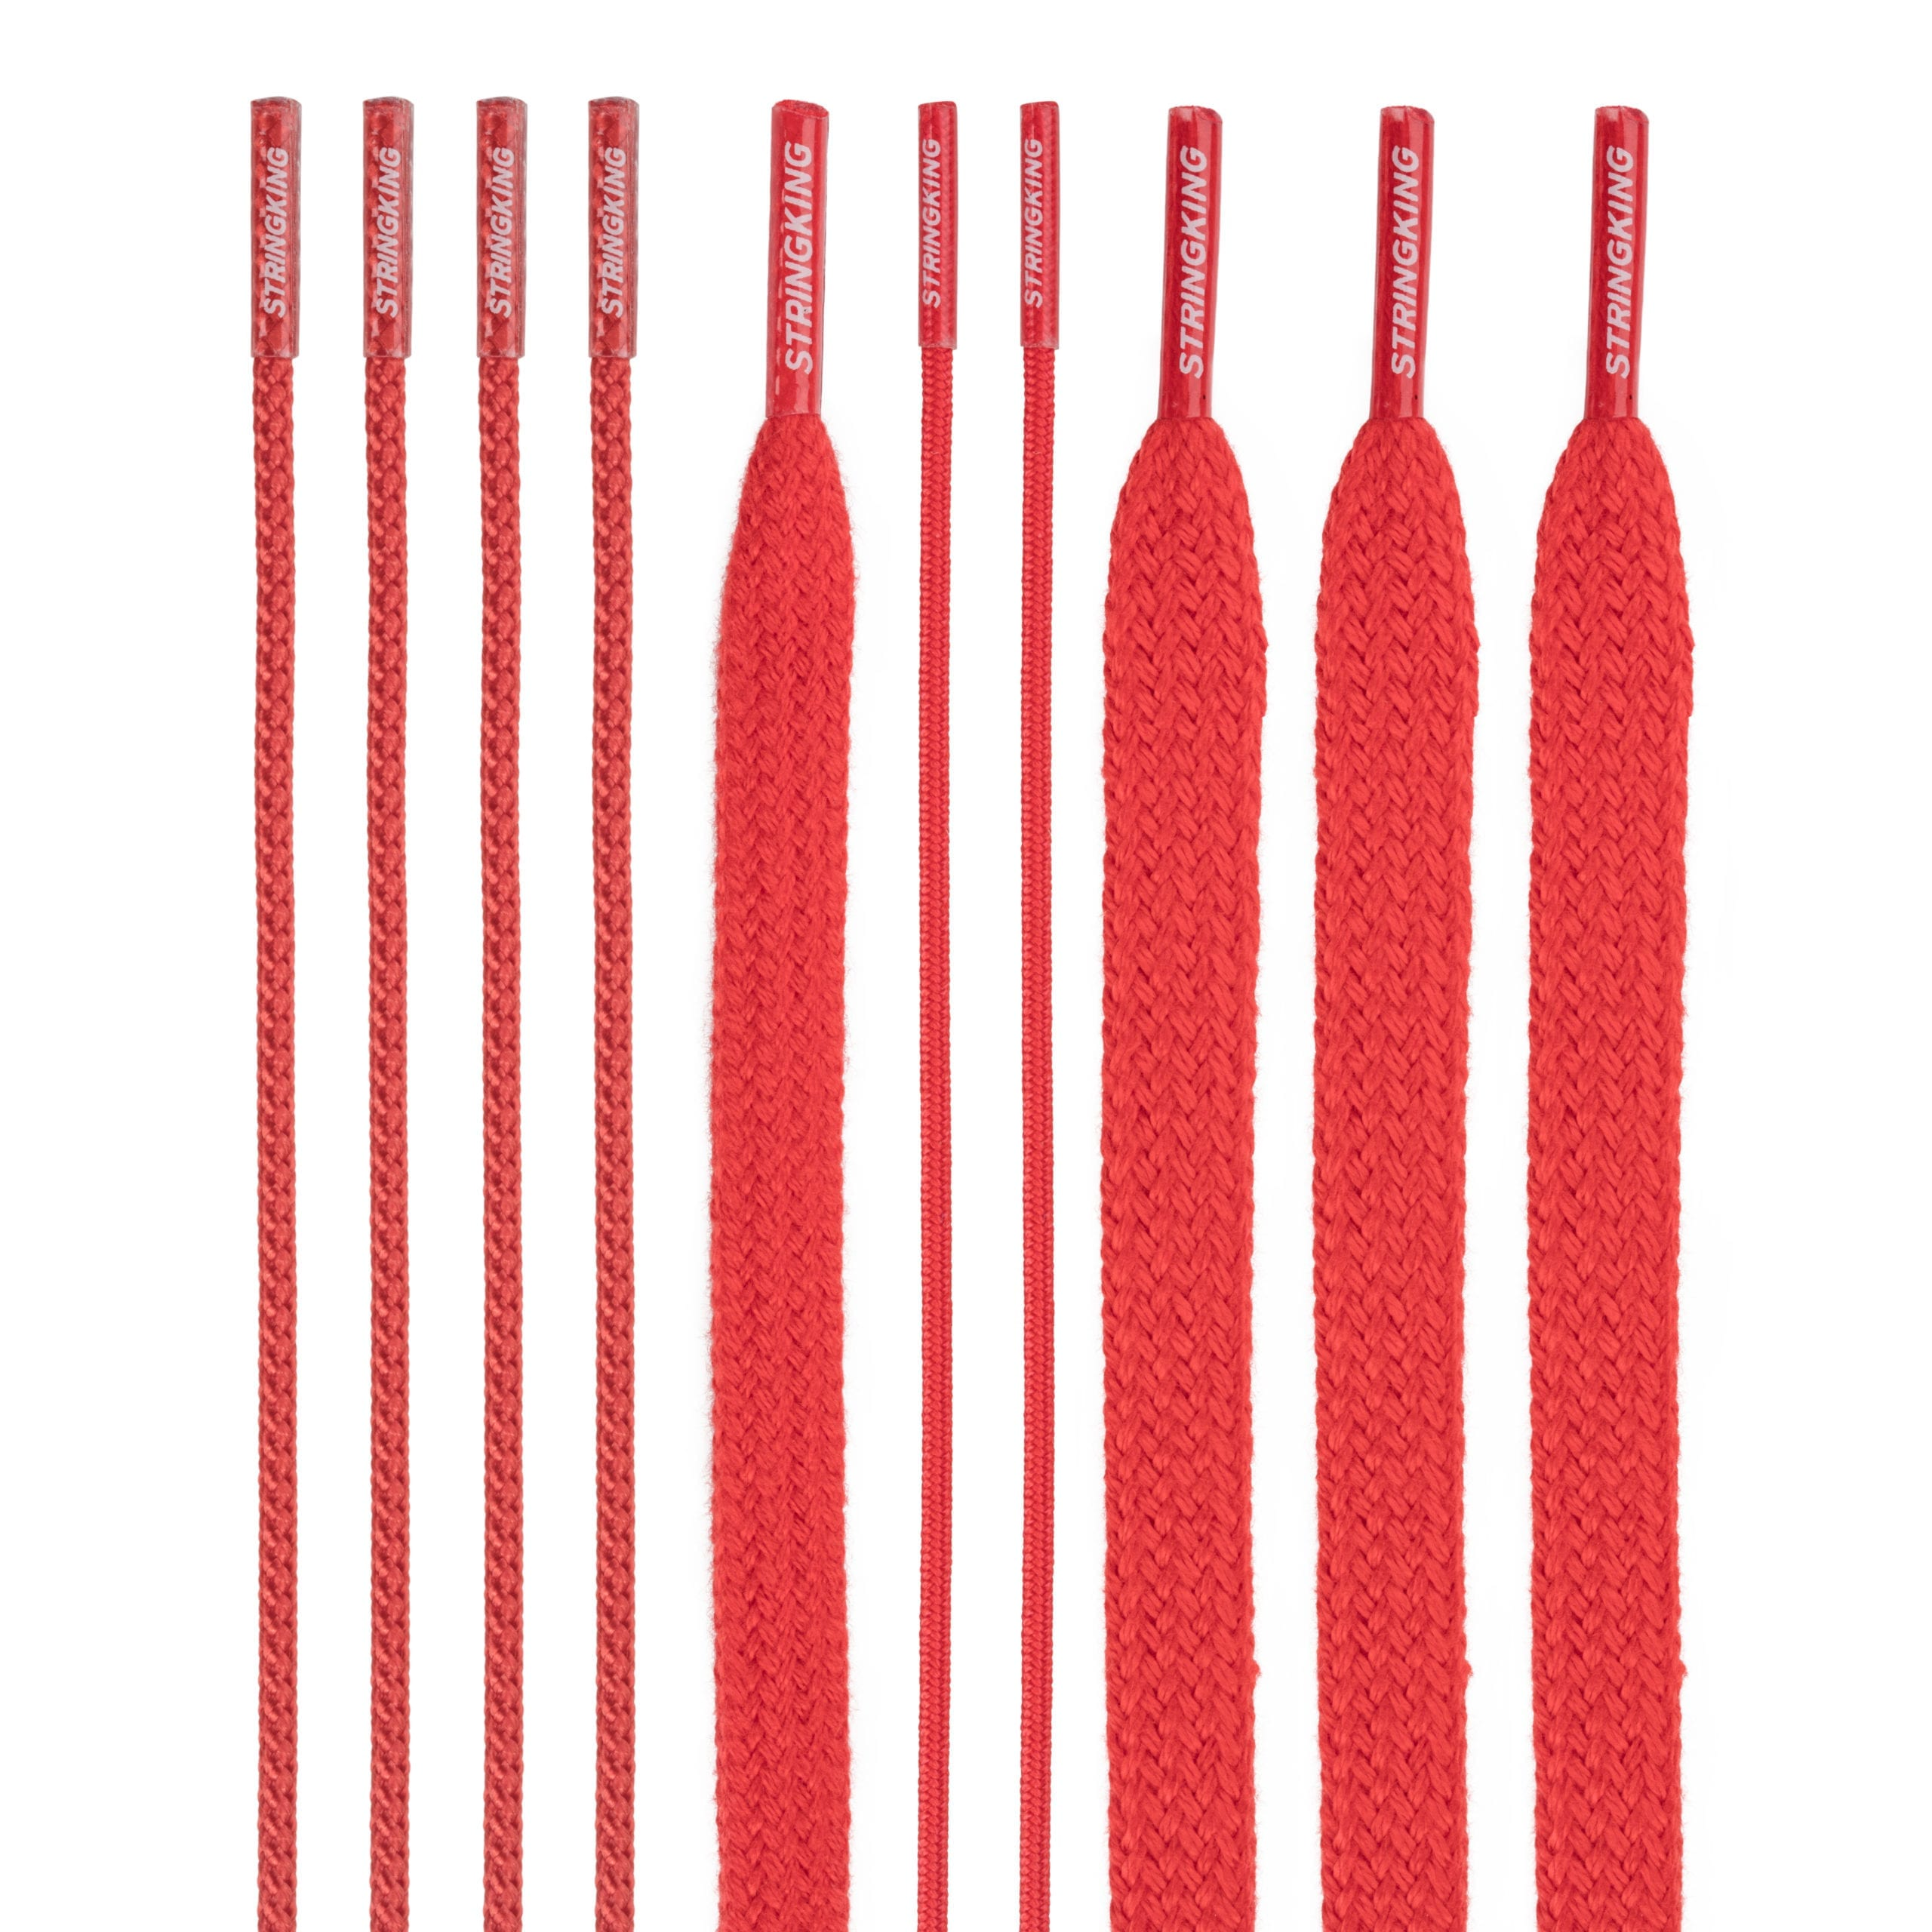 string-kit-BB-retailers-red-1-scaled-1.jpg